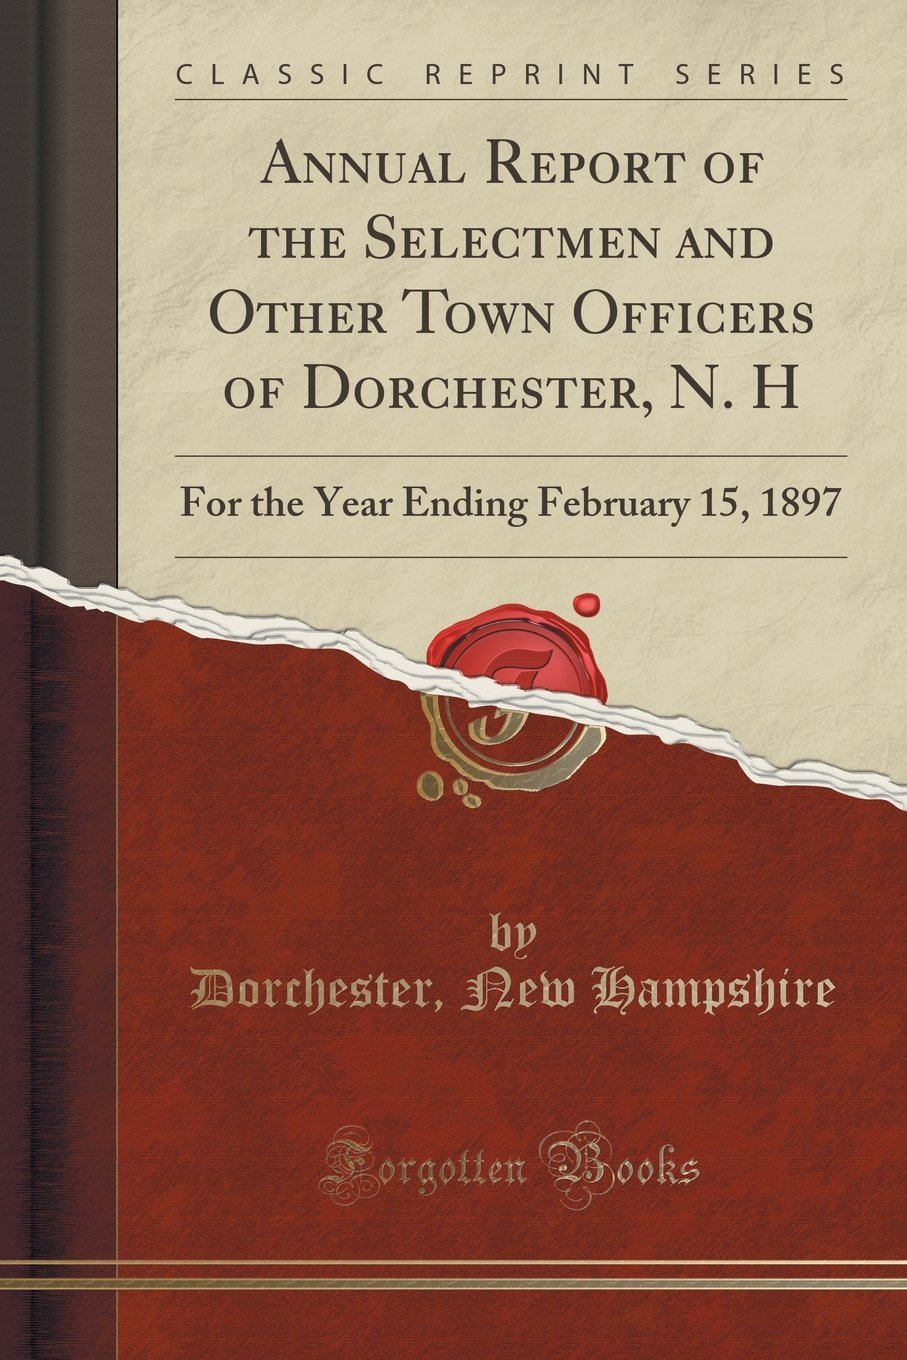 Download Annual Report of the Selectmen and Other Town Officers of Dorchester, N. H: For the Year Ending February 15, 1897 (Classic Reprint) ebook